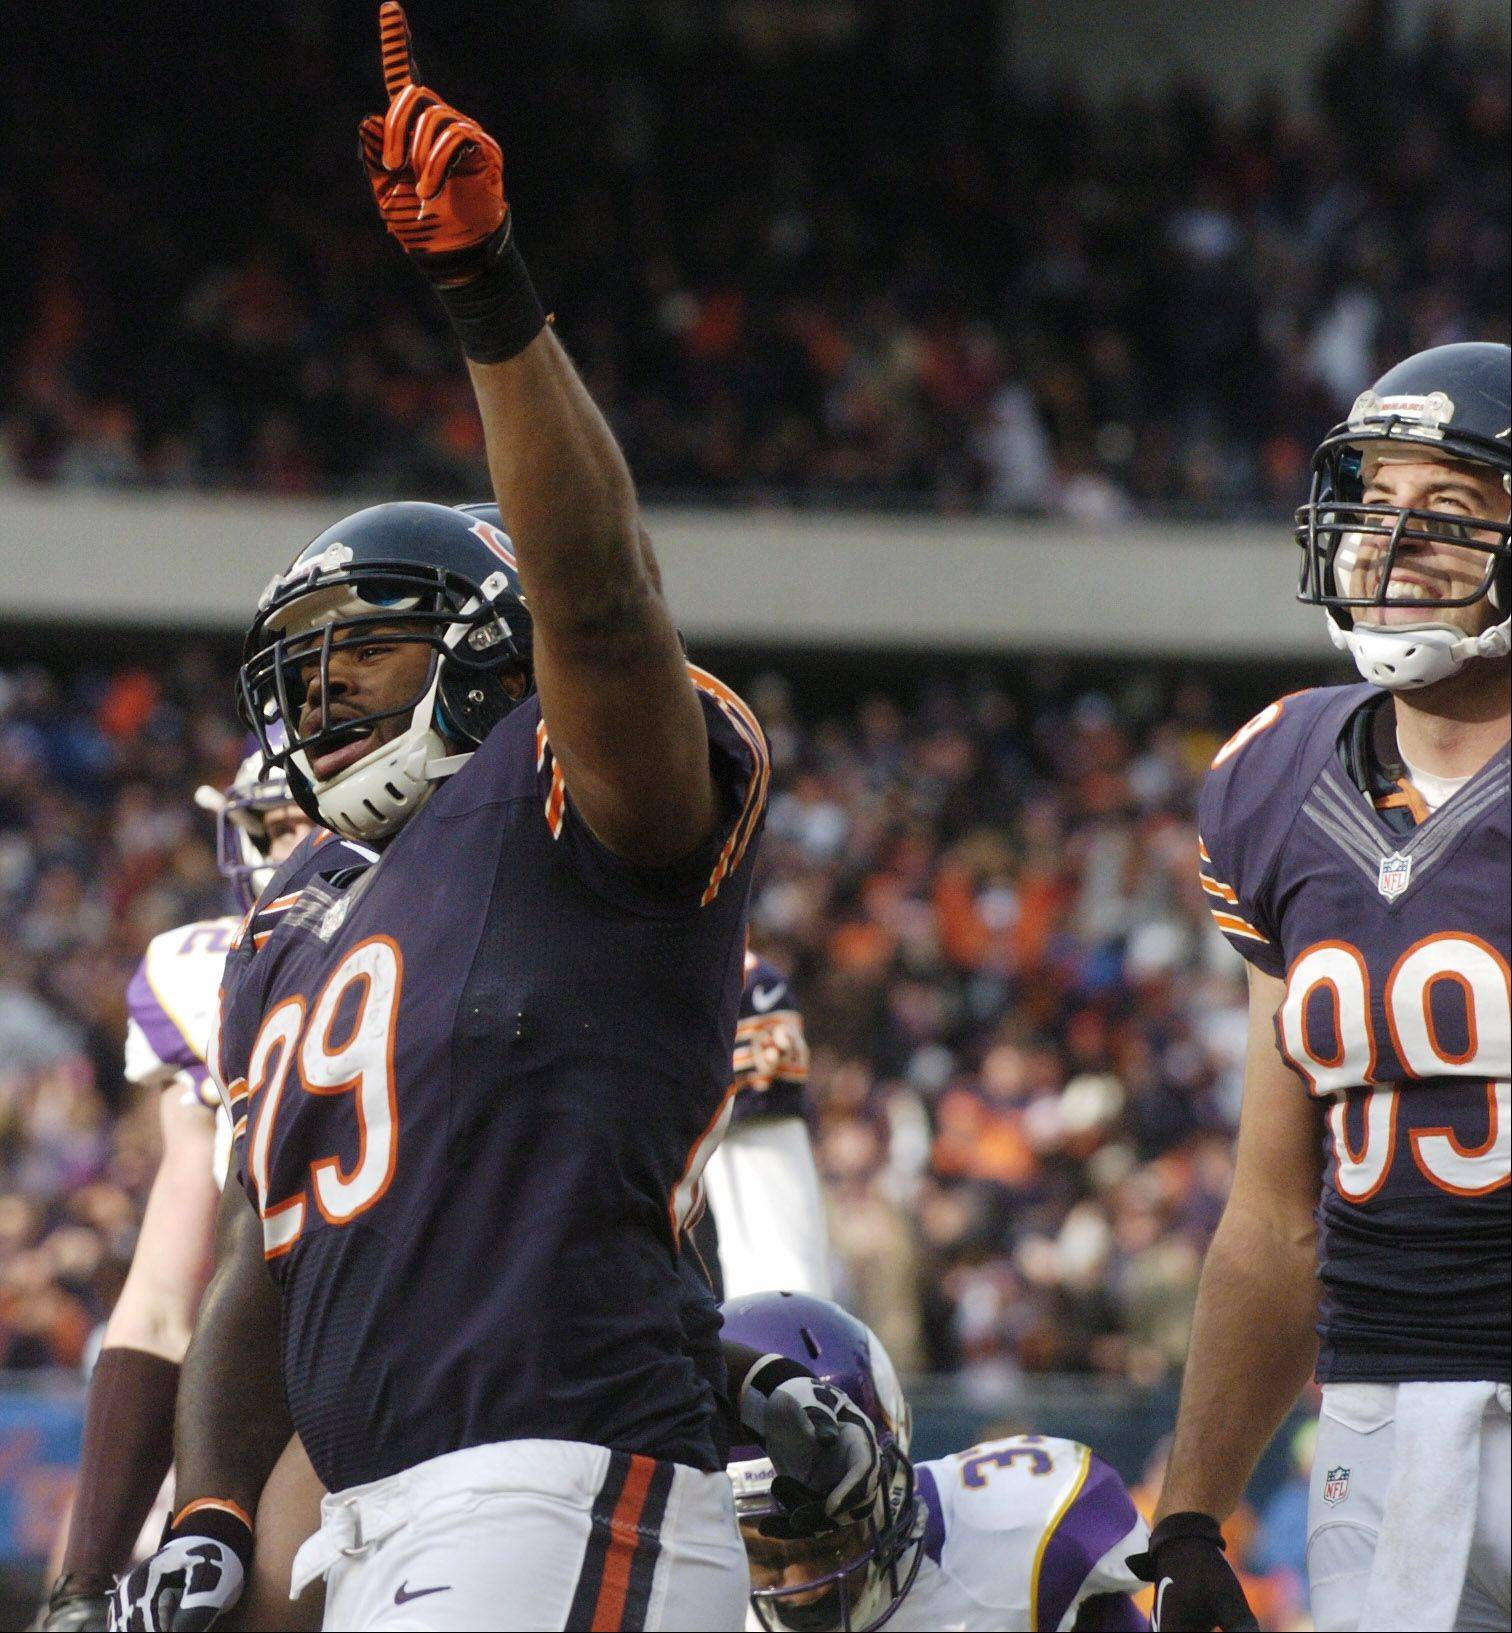 Chicago Bears running back Michael Bush celebrates his second-quarter touchdown against the Minnesota Vikings at Soldier Field Sunday.